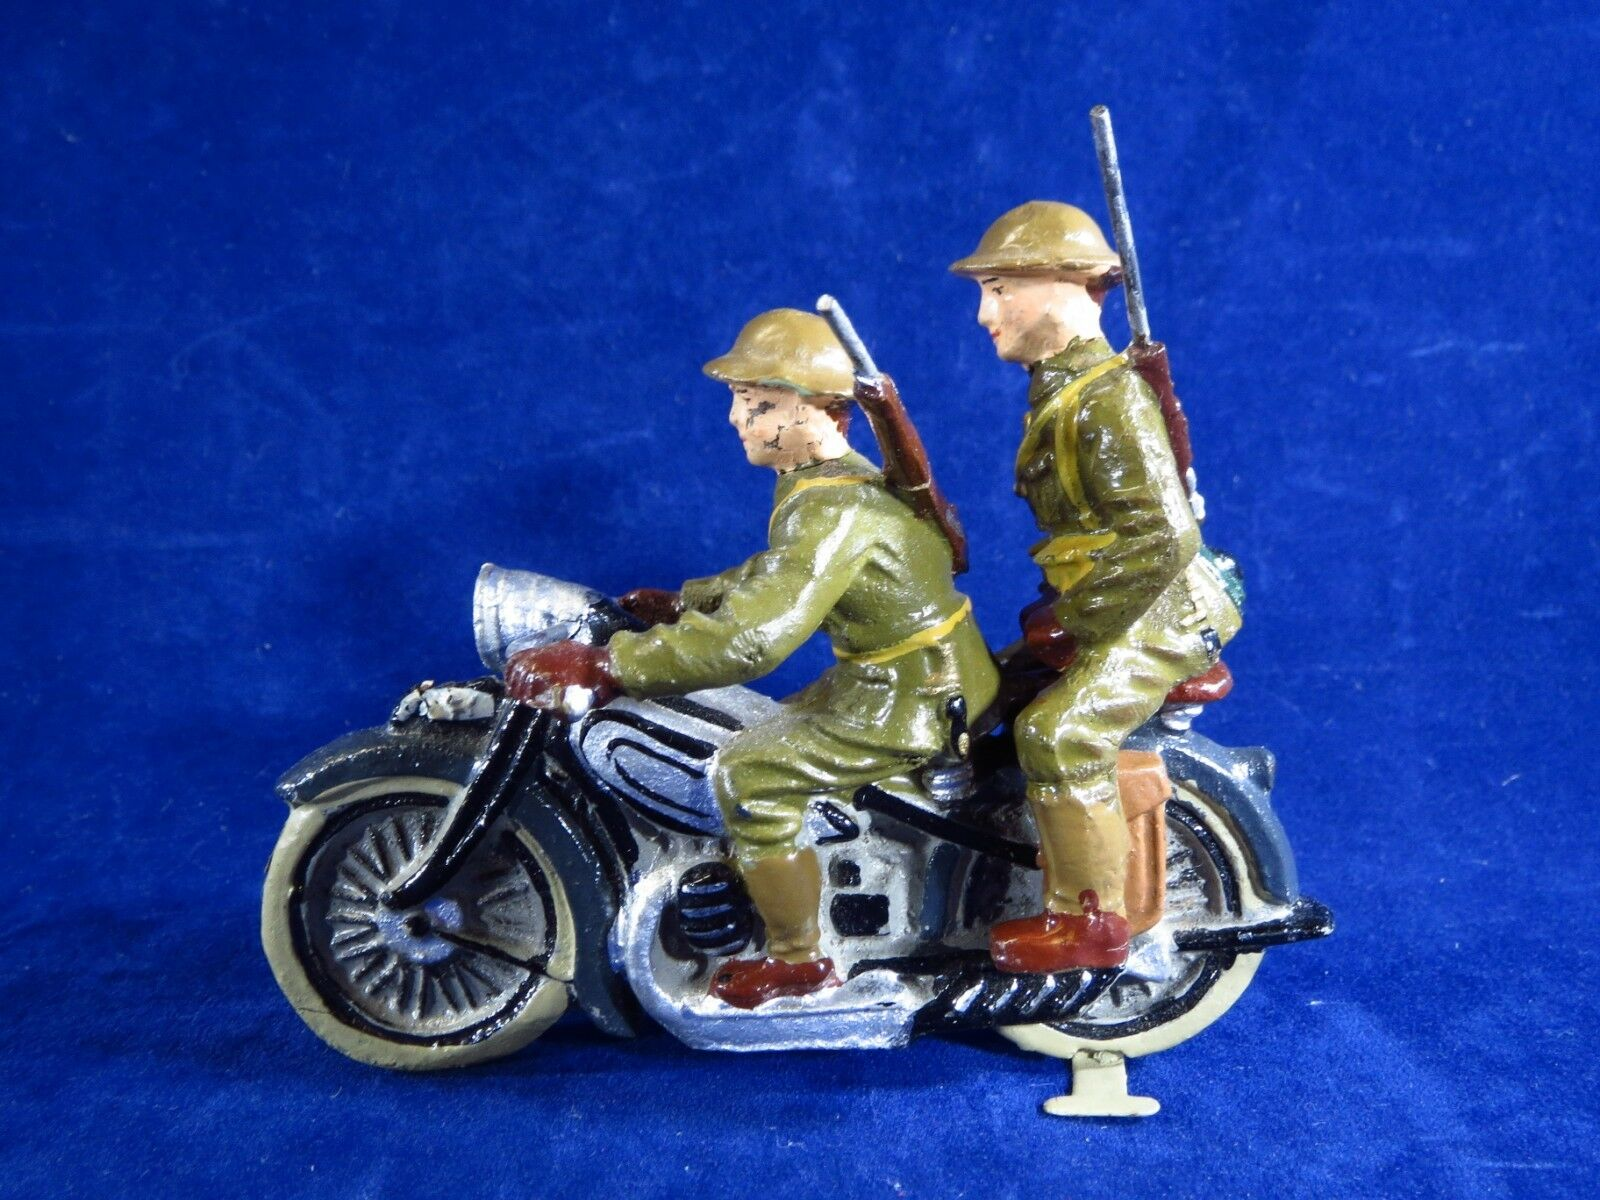 Elastolin or Lineol composition motorcycle, w 2 American Soldier riders